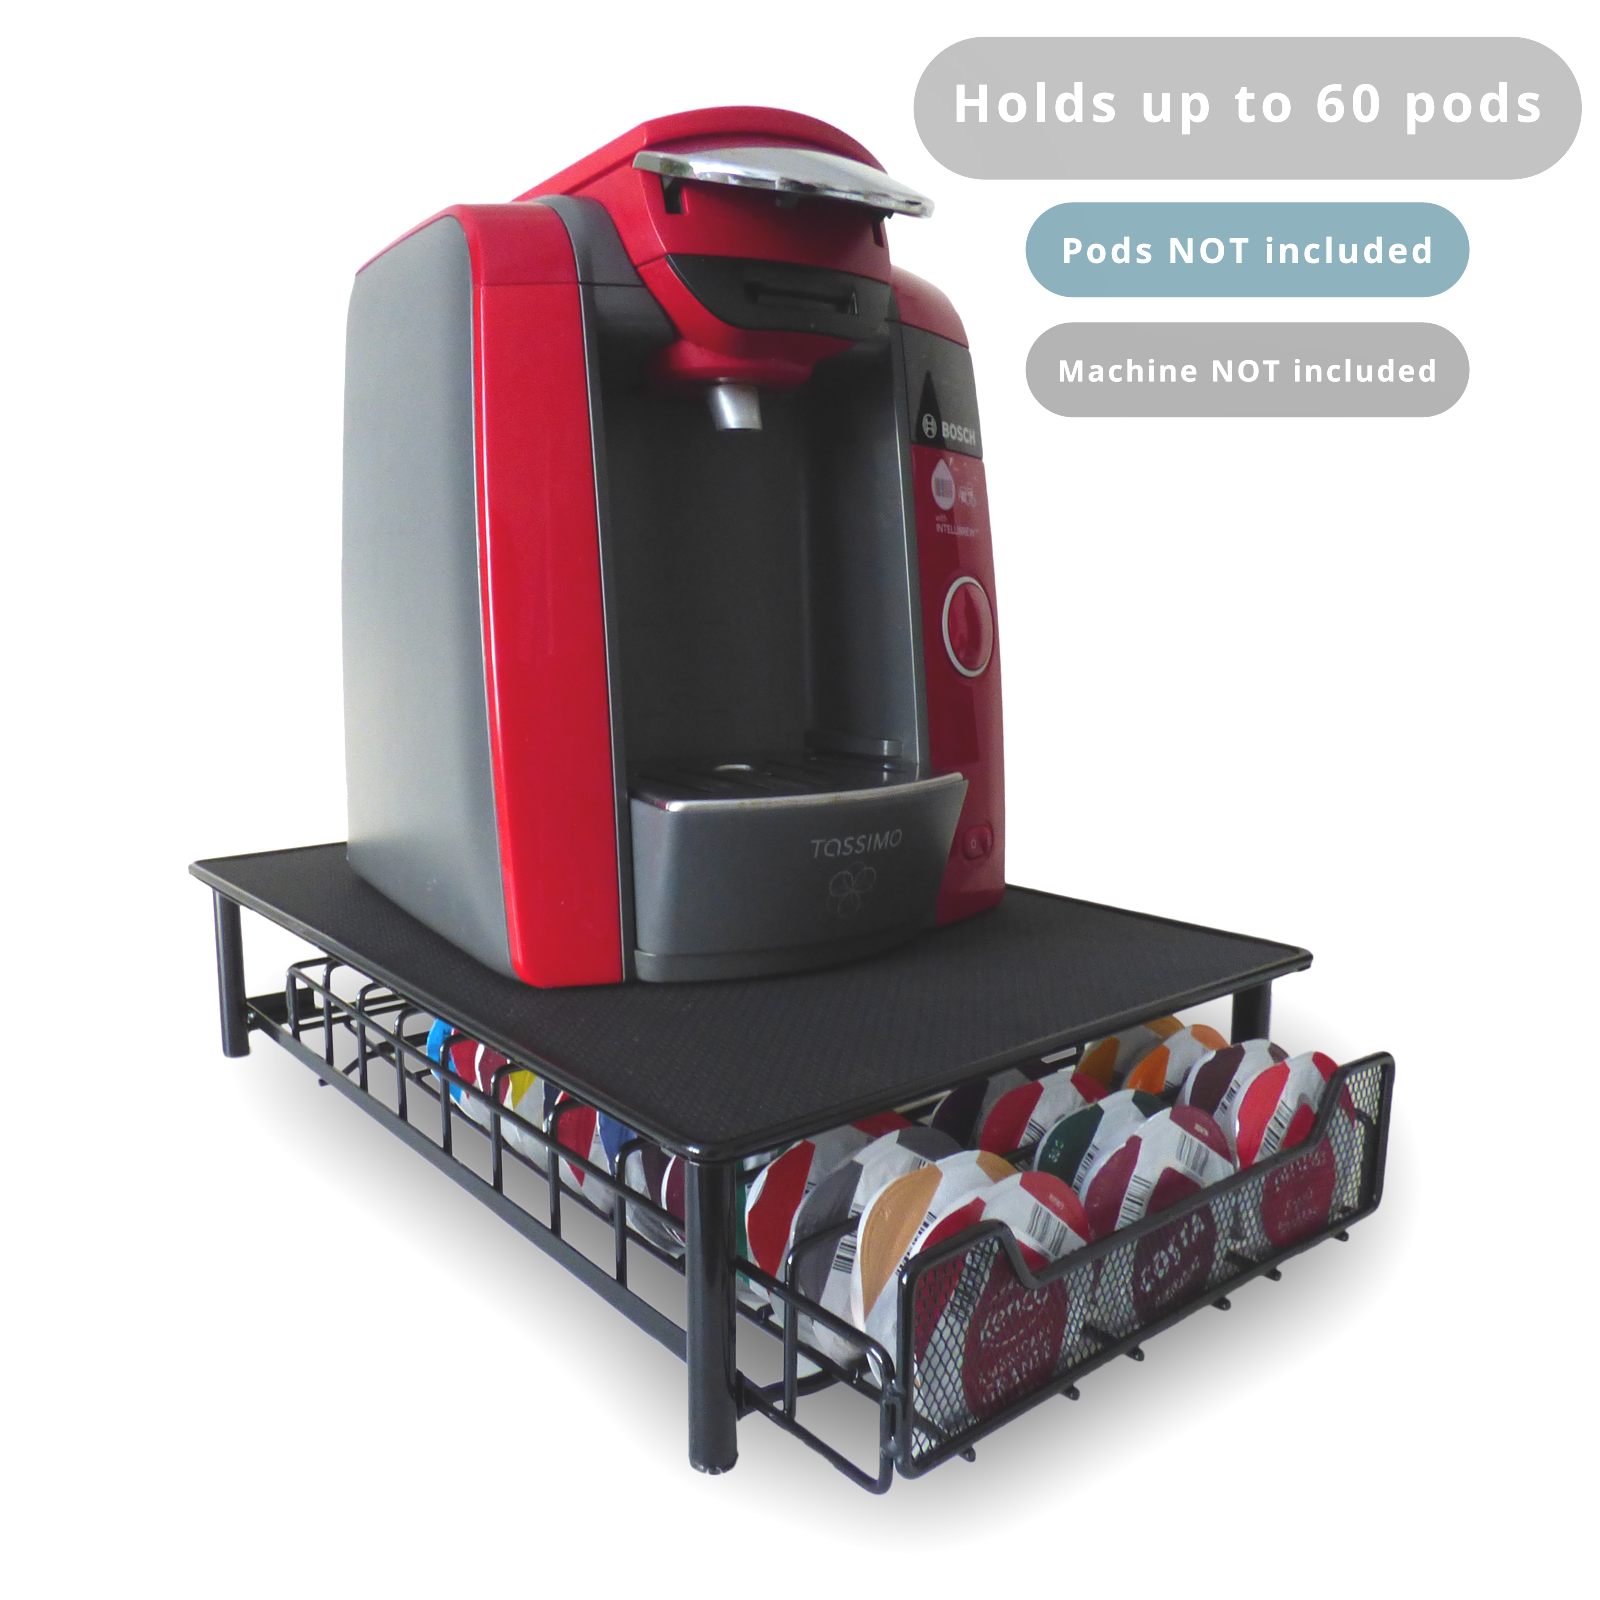 60 t disc pod tassimo coffee holder dispenser stand drawer storage m w ebay. Black Bedroom Furniture Sets. Home Design Ideas